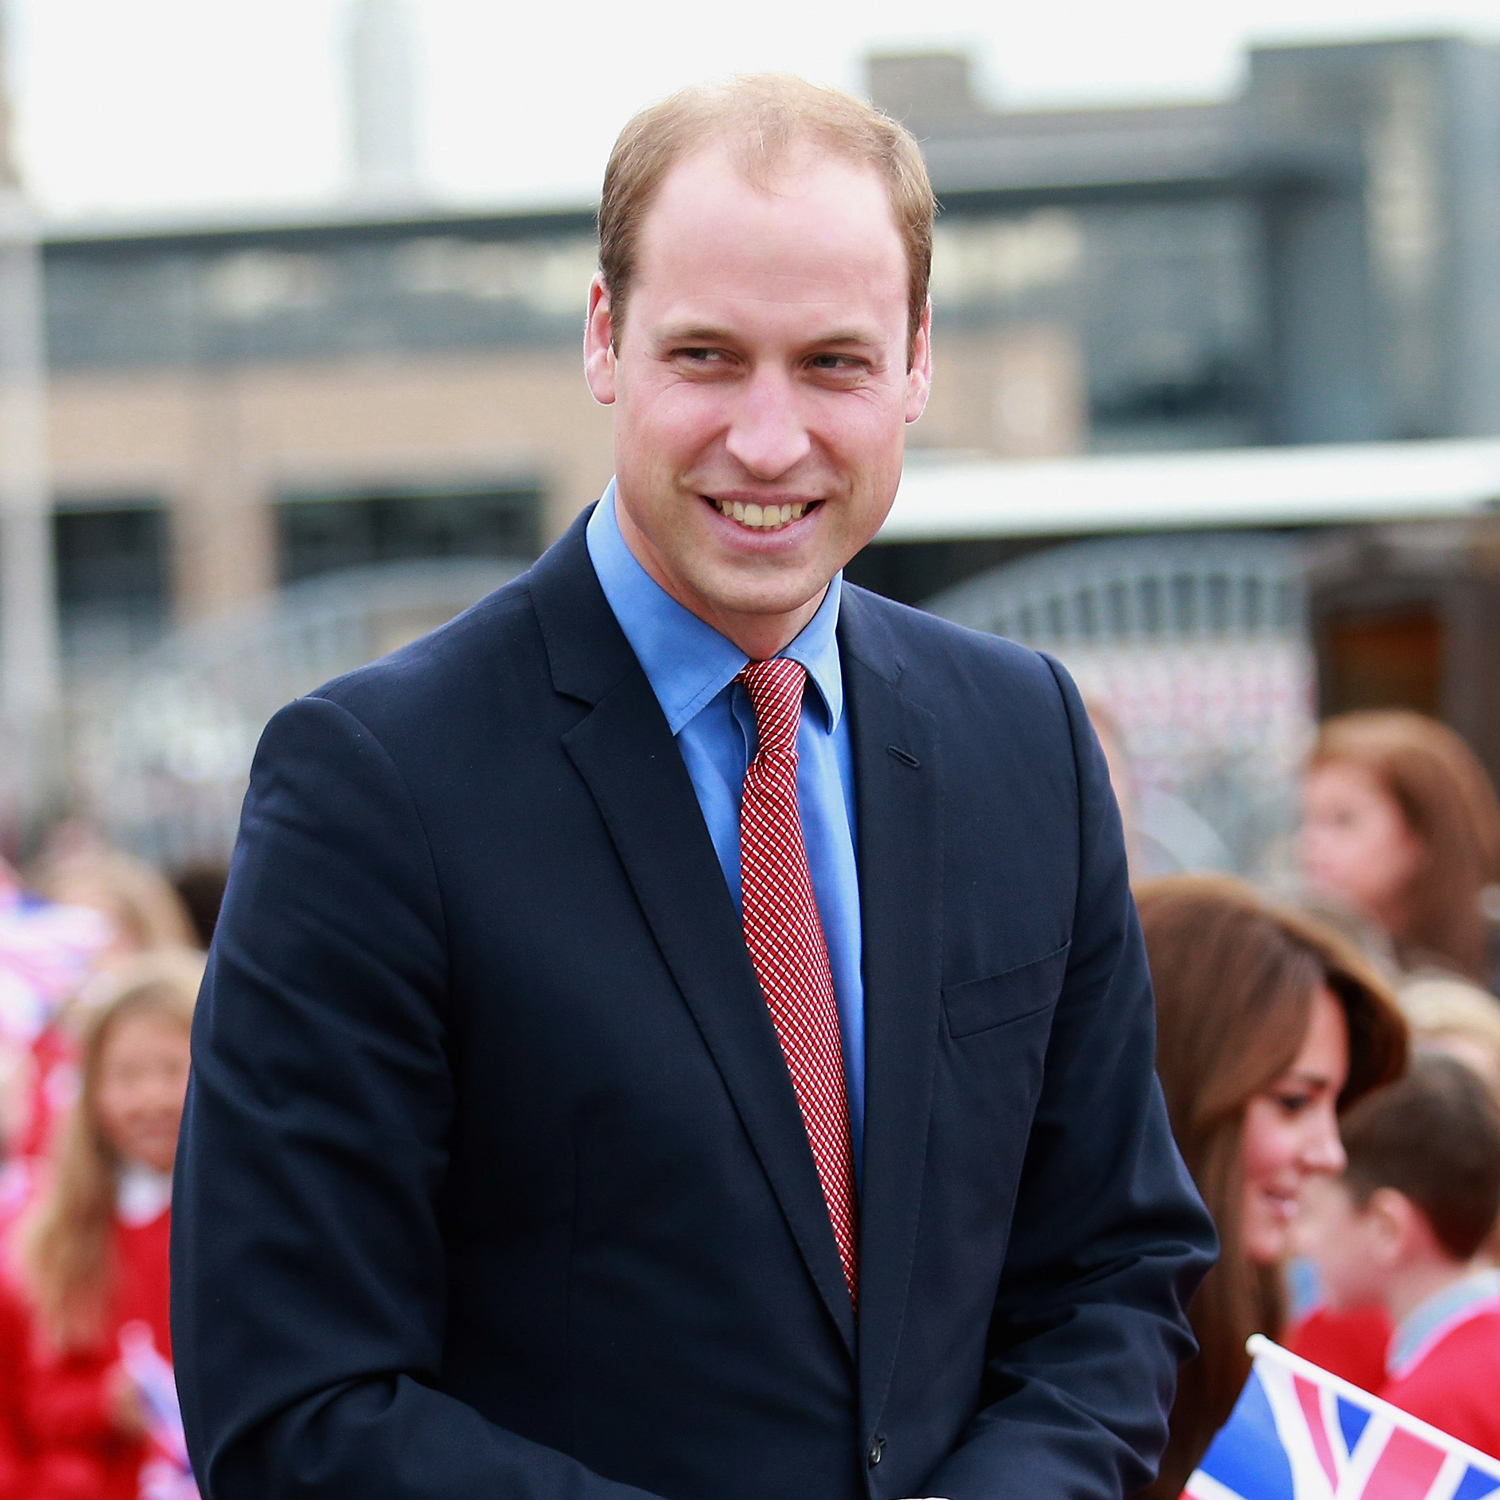 Prince William Reveals Which Popular Restaurant Chain He Has Recently Become a Fan Of